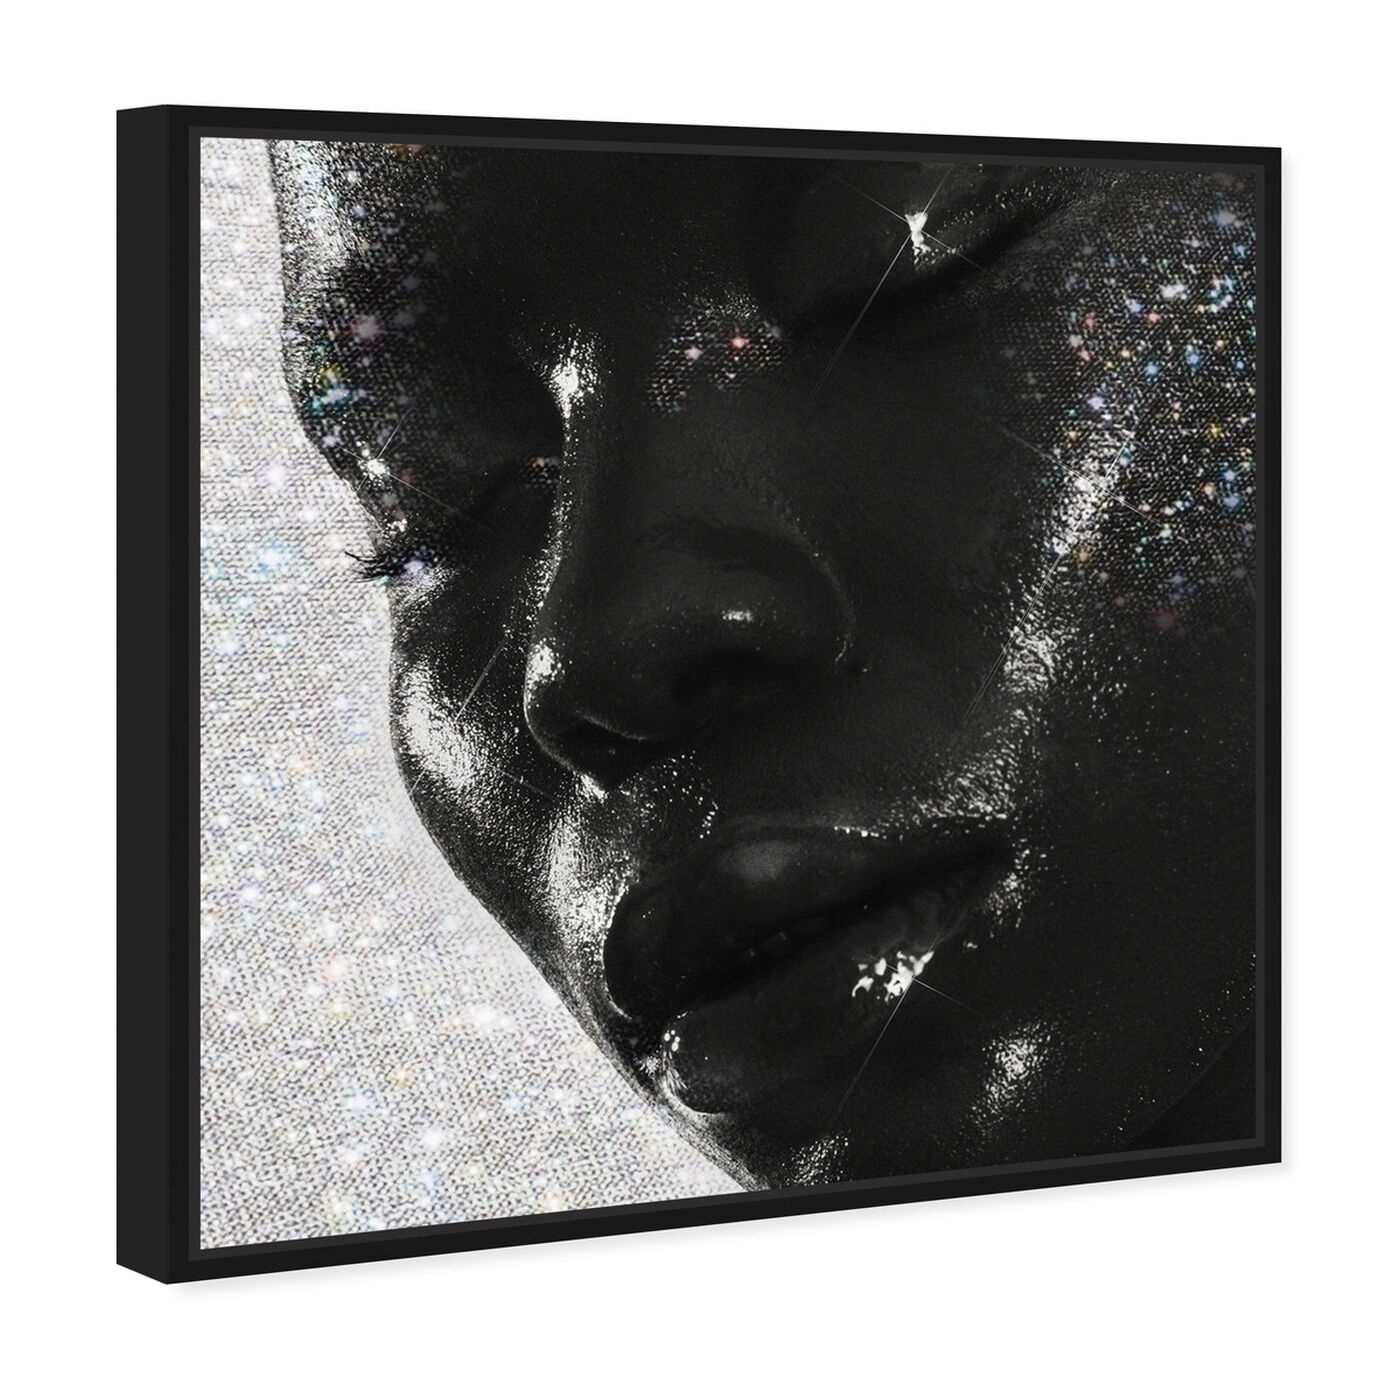 Angled view of Moment of Pure Bliss featuring fashion and glam and portraits art.